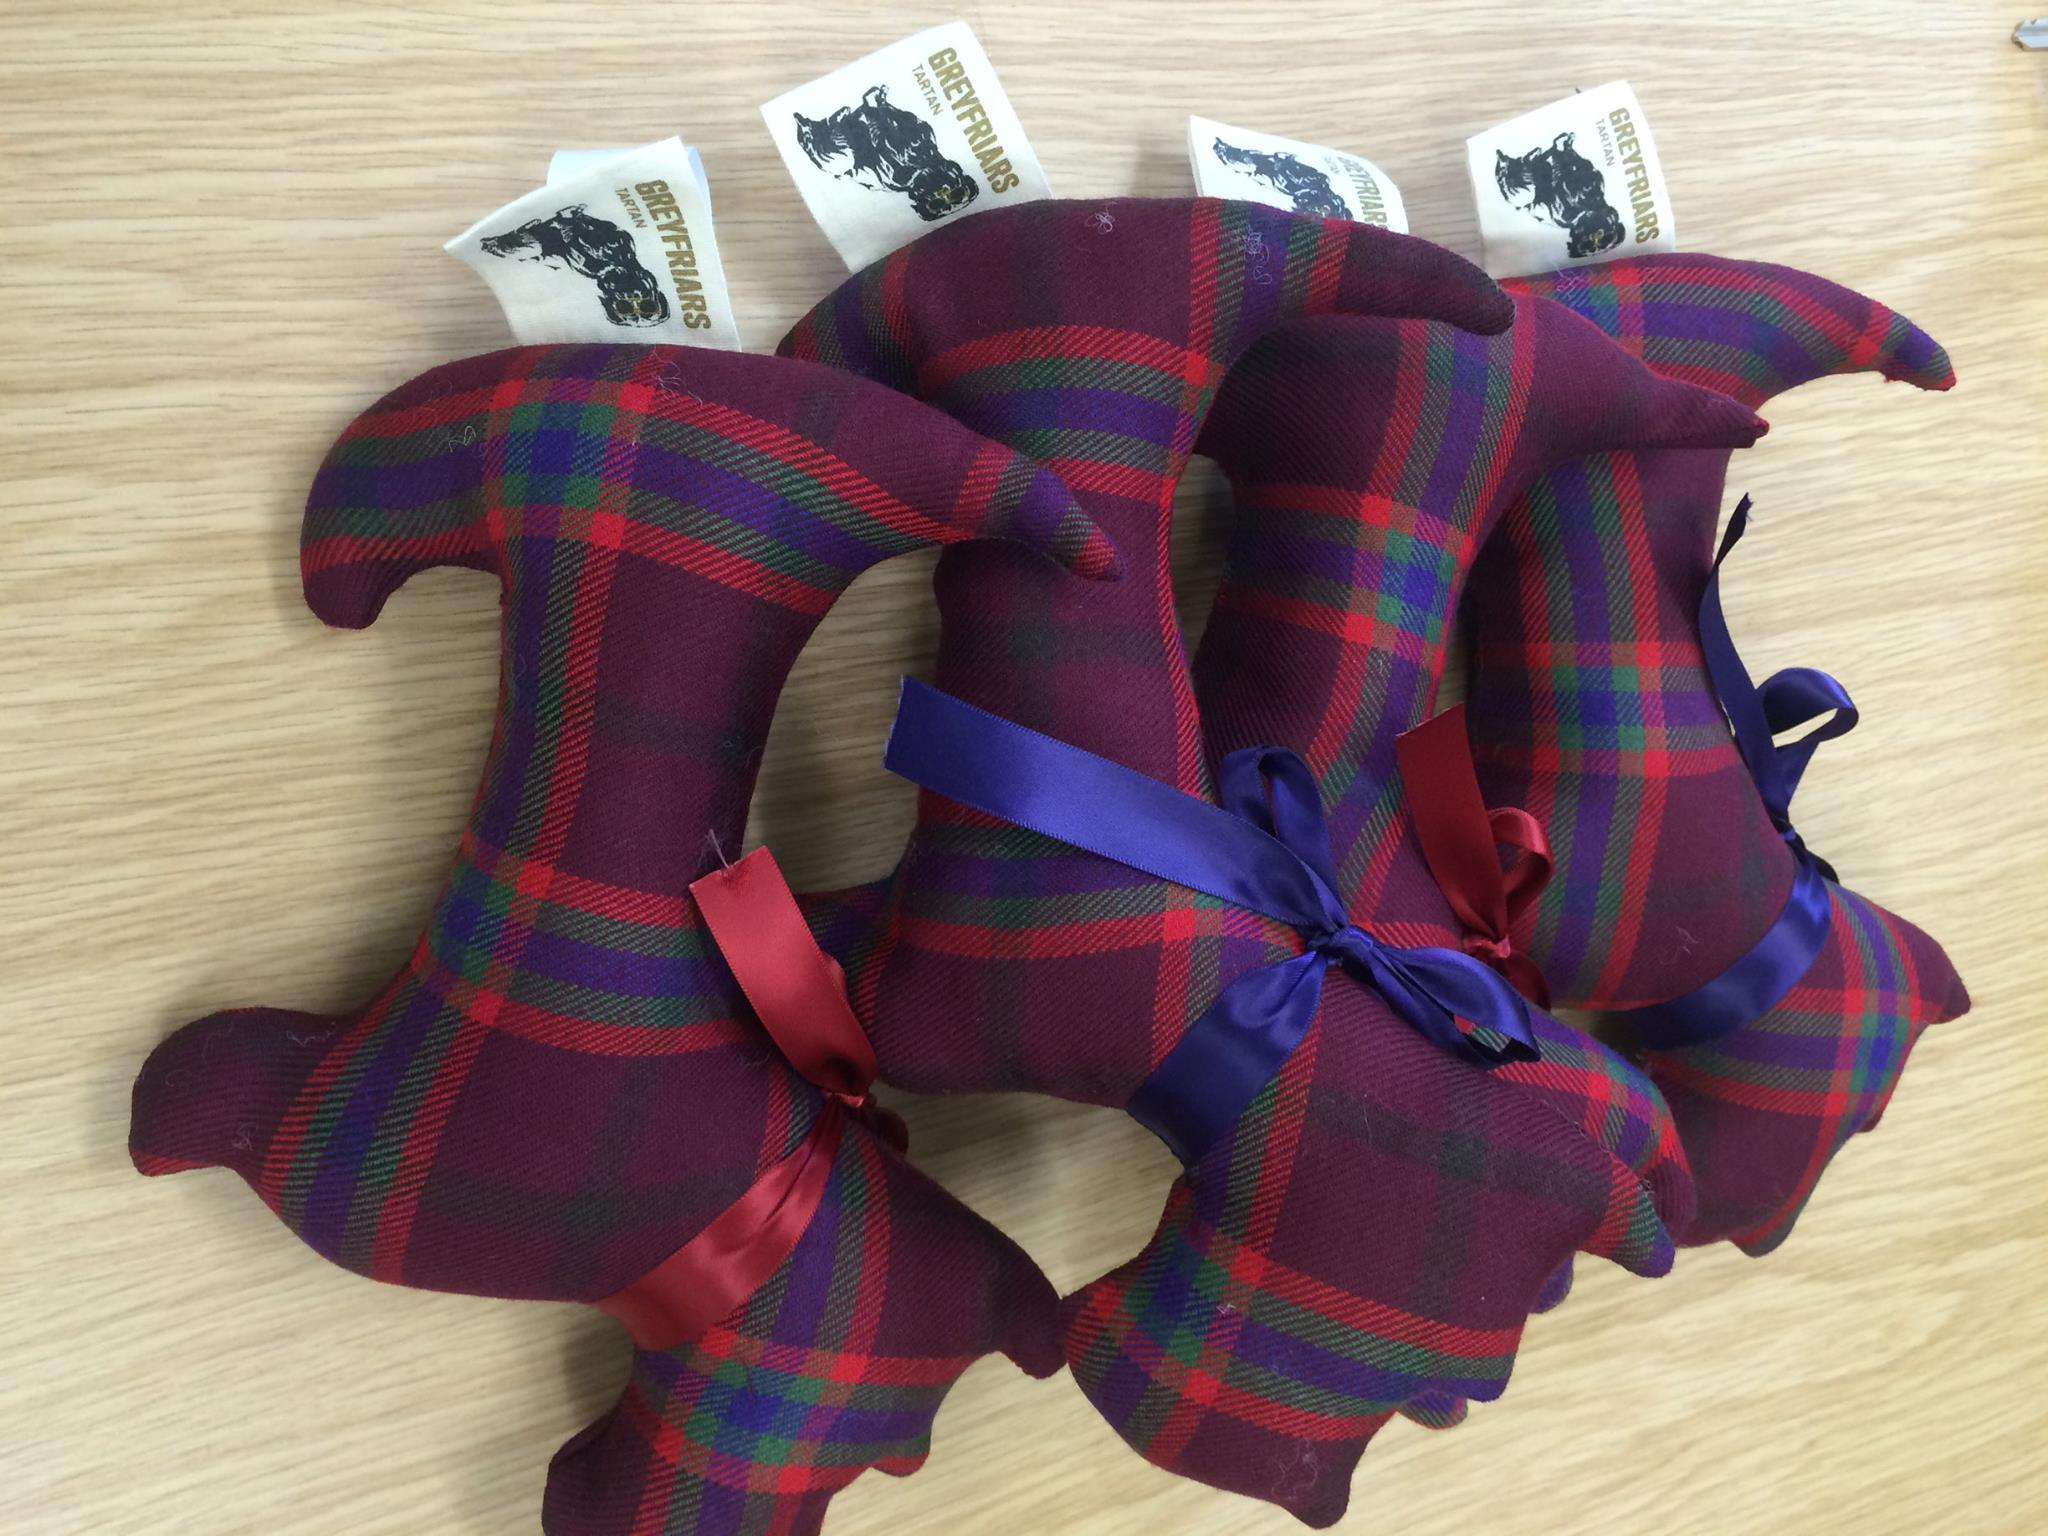 grassmarket community project, greyfriars tartan dogs, ethical wedding, edinburgh wedding venue